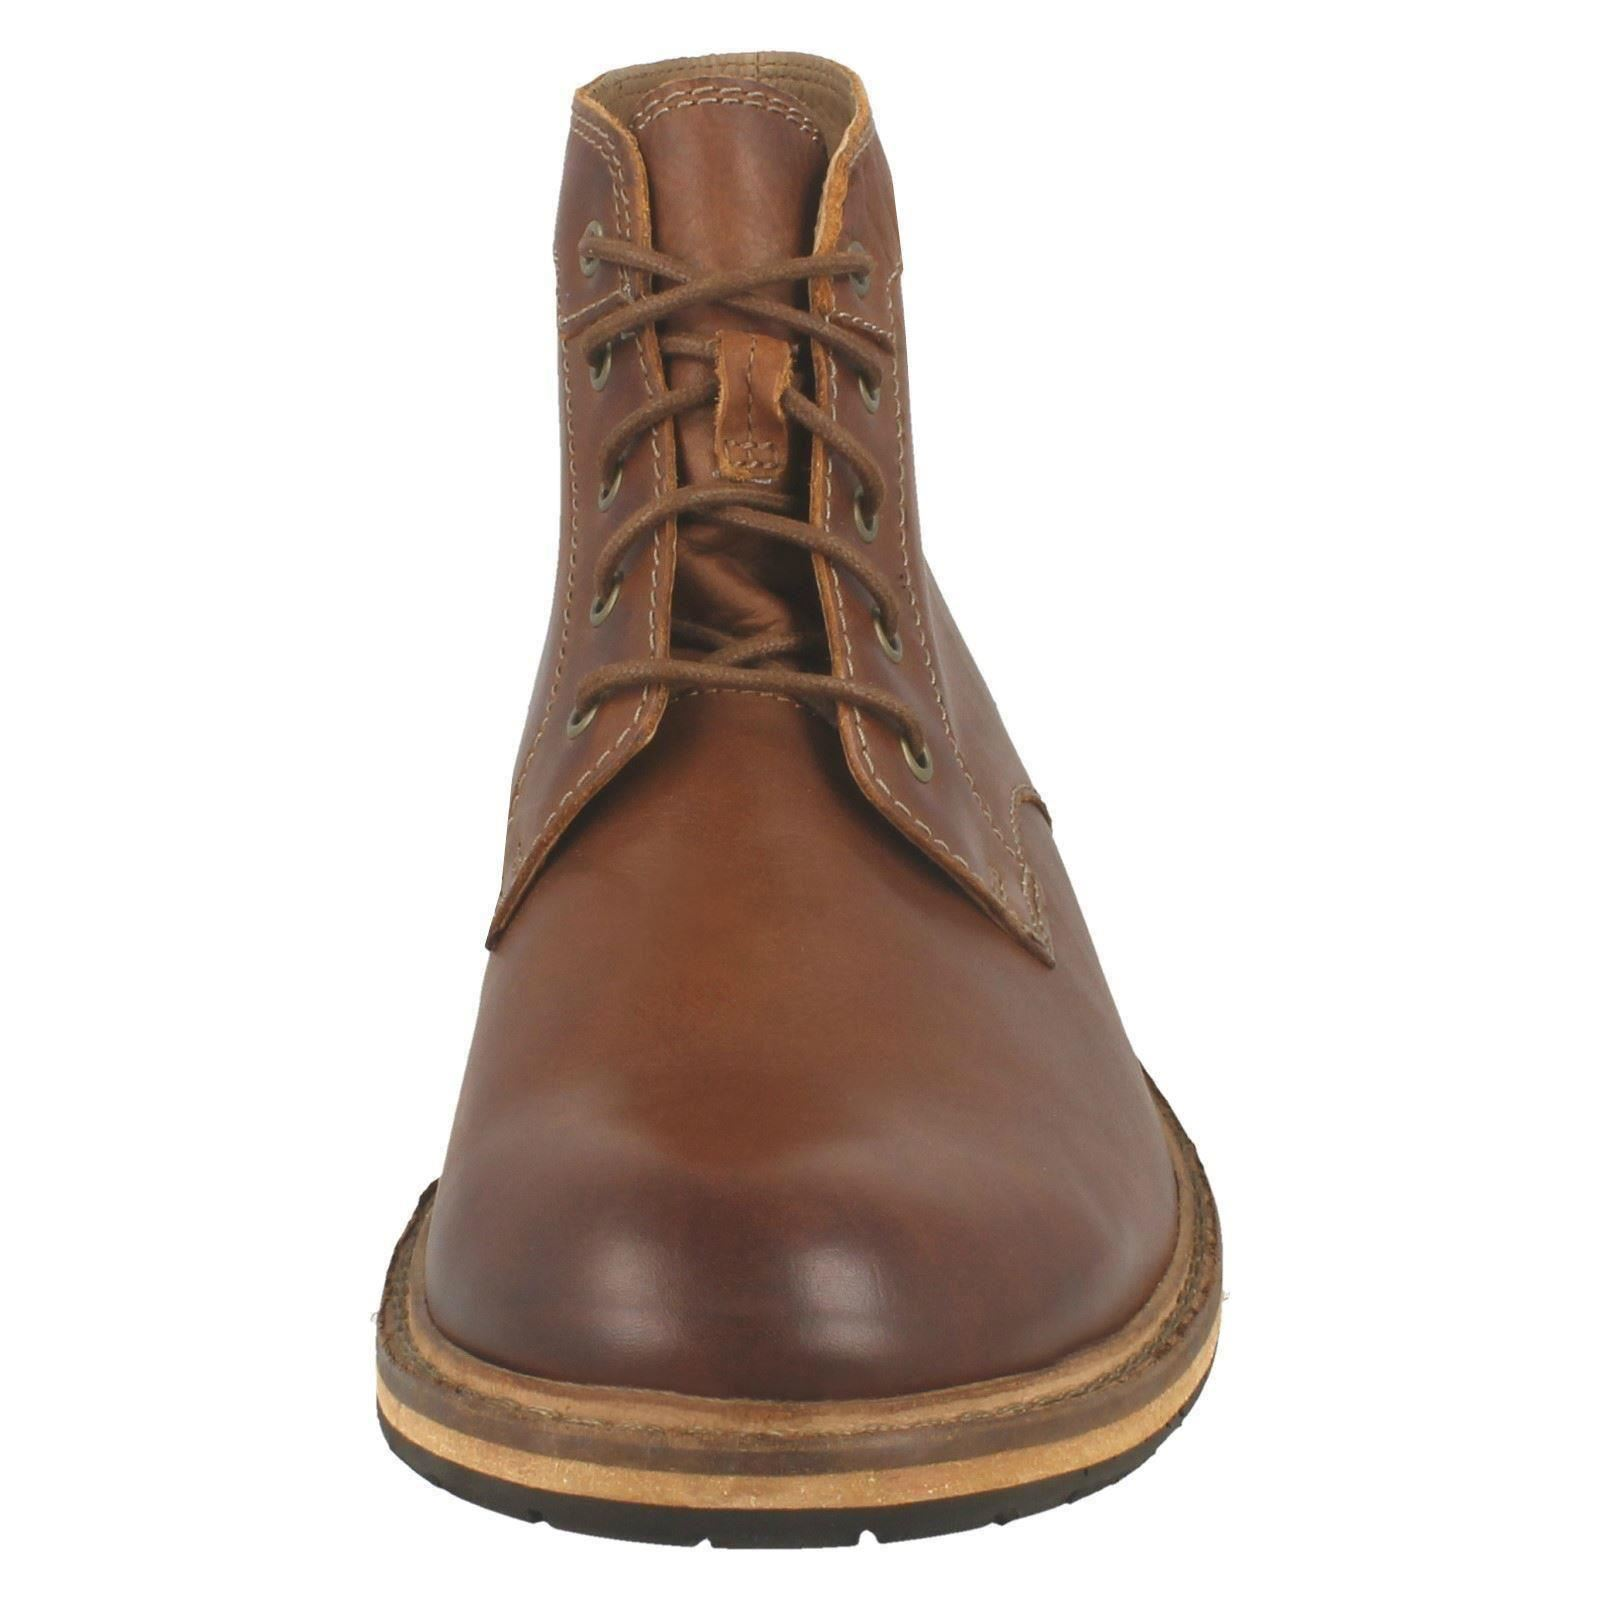 Clarks Botines Hombre Clarkdale Clarkdale Clarkdale Bud ff8e9f